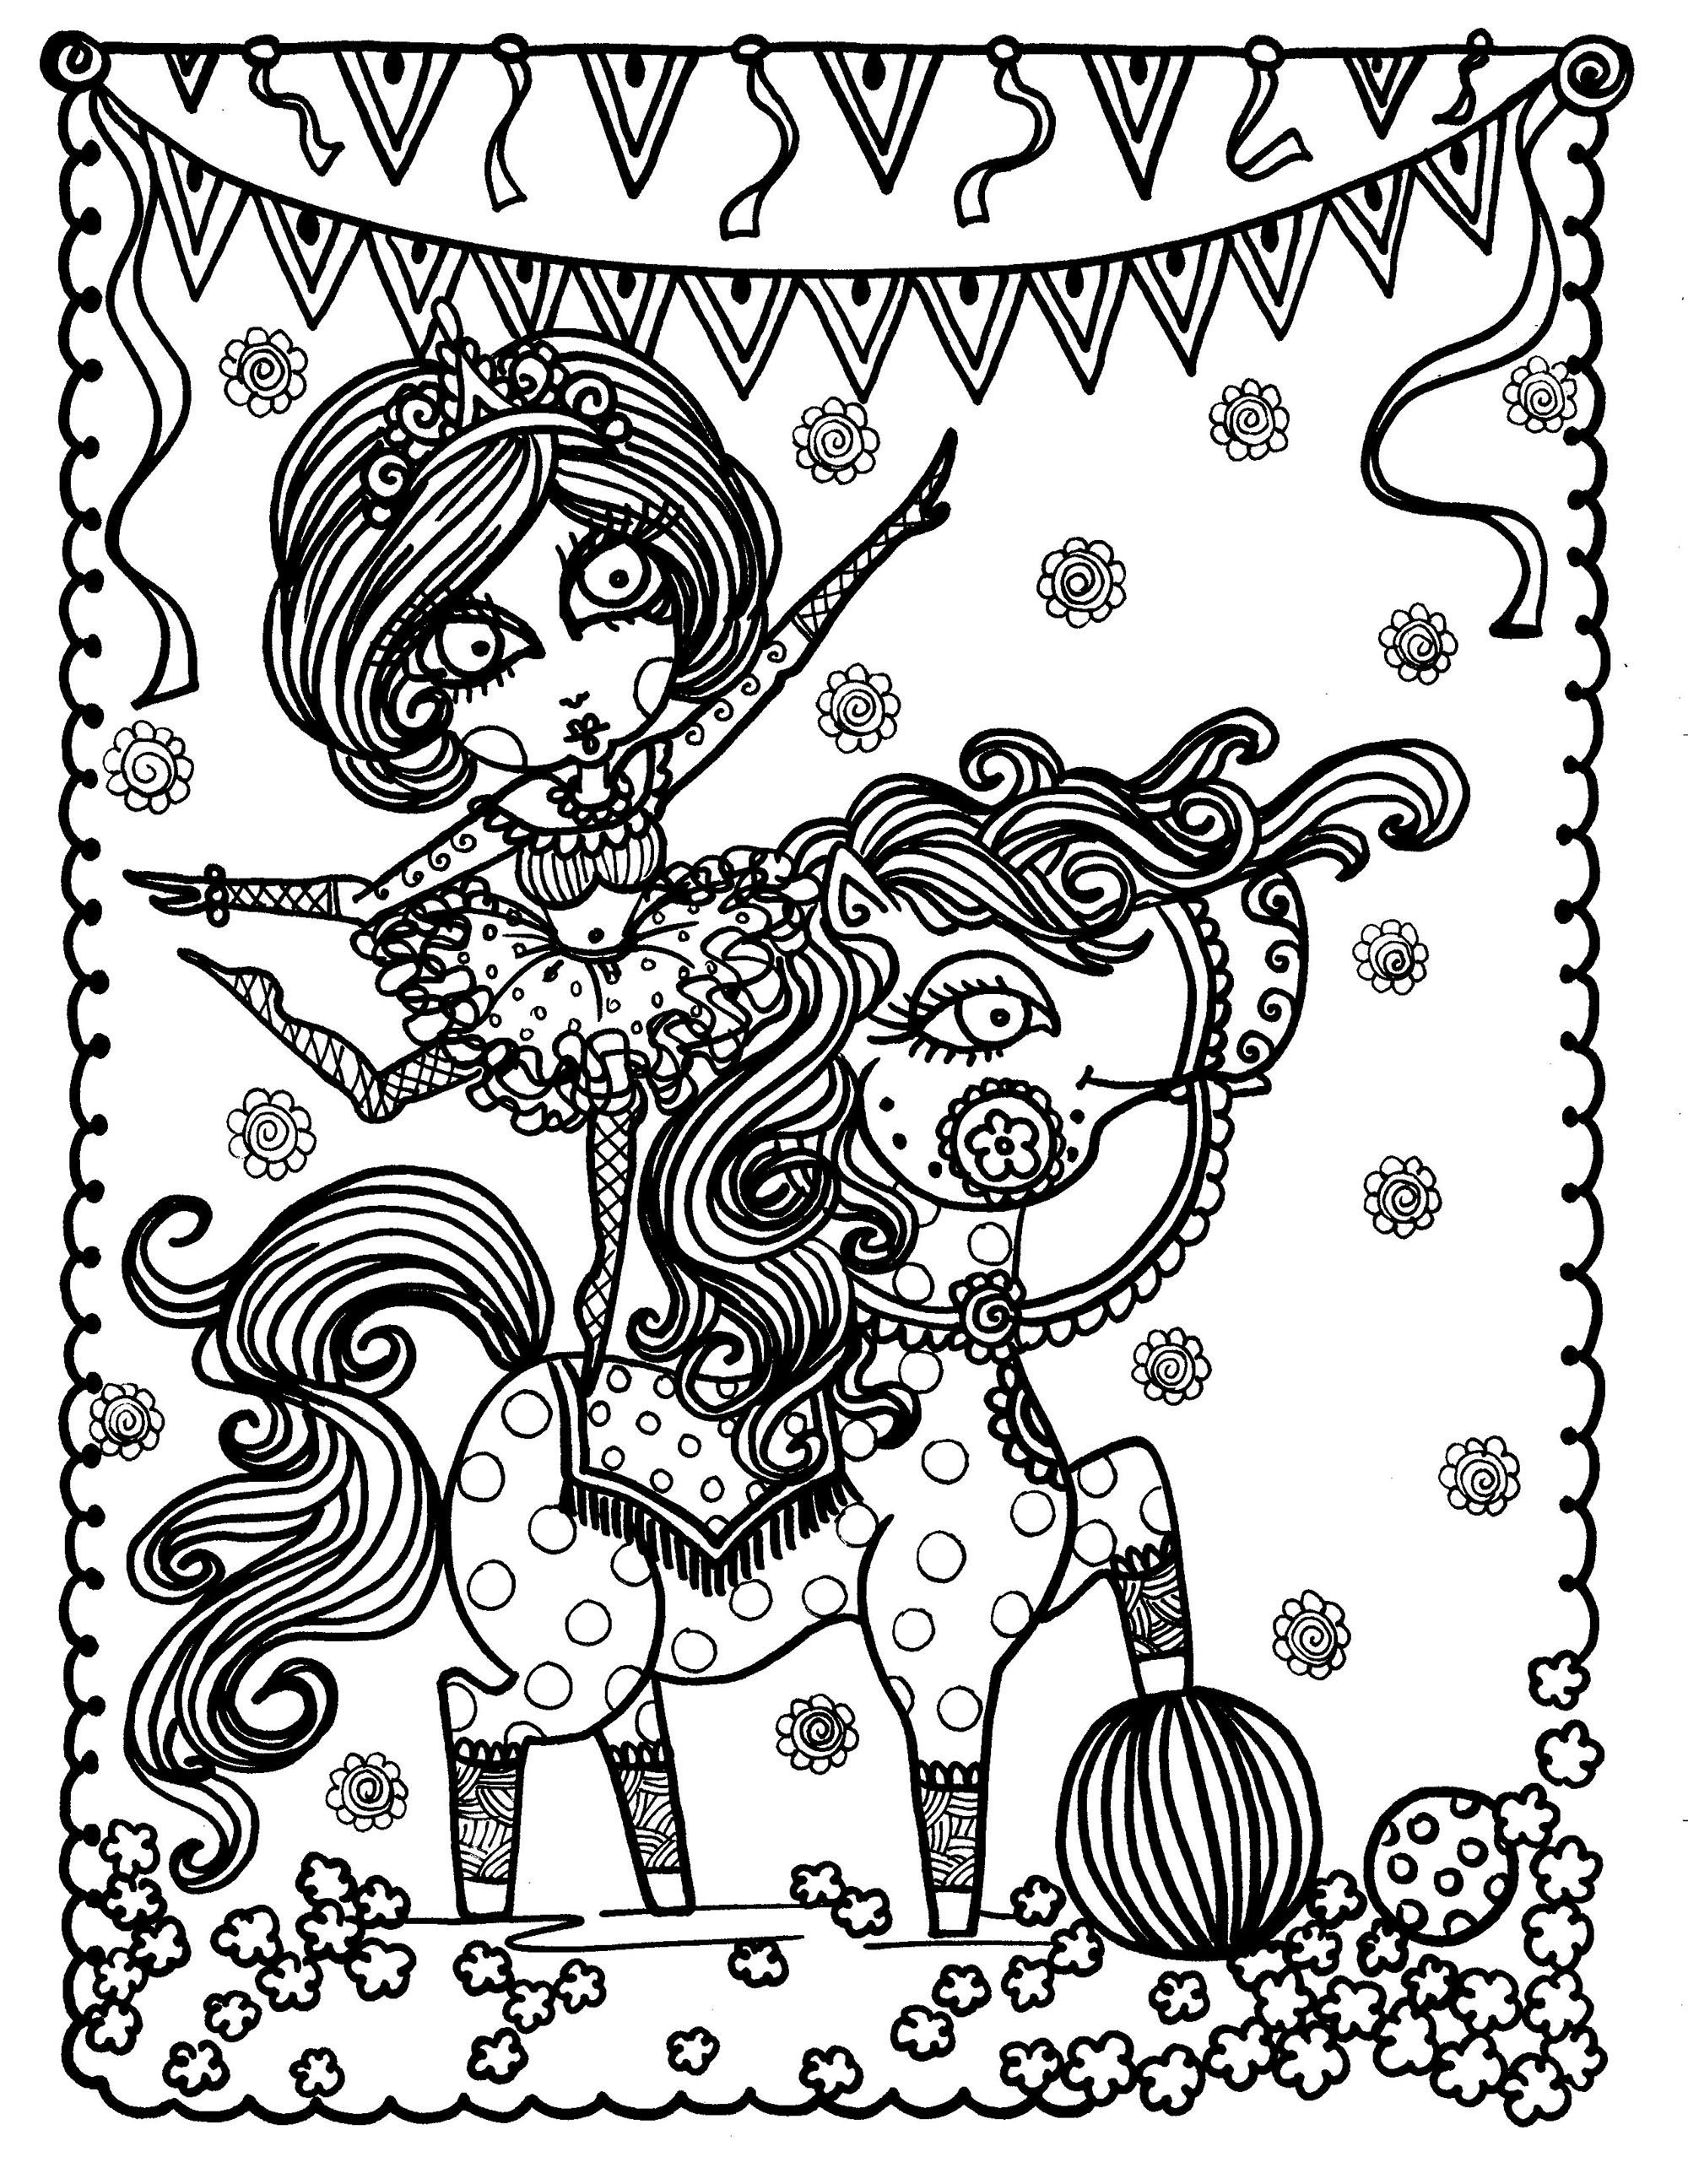 The Girl And Horse Circus Show Coloring Page